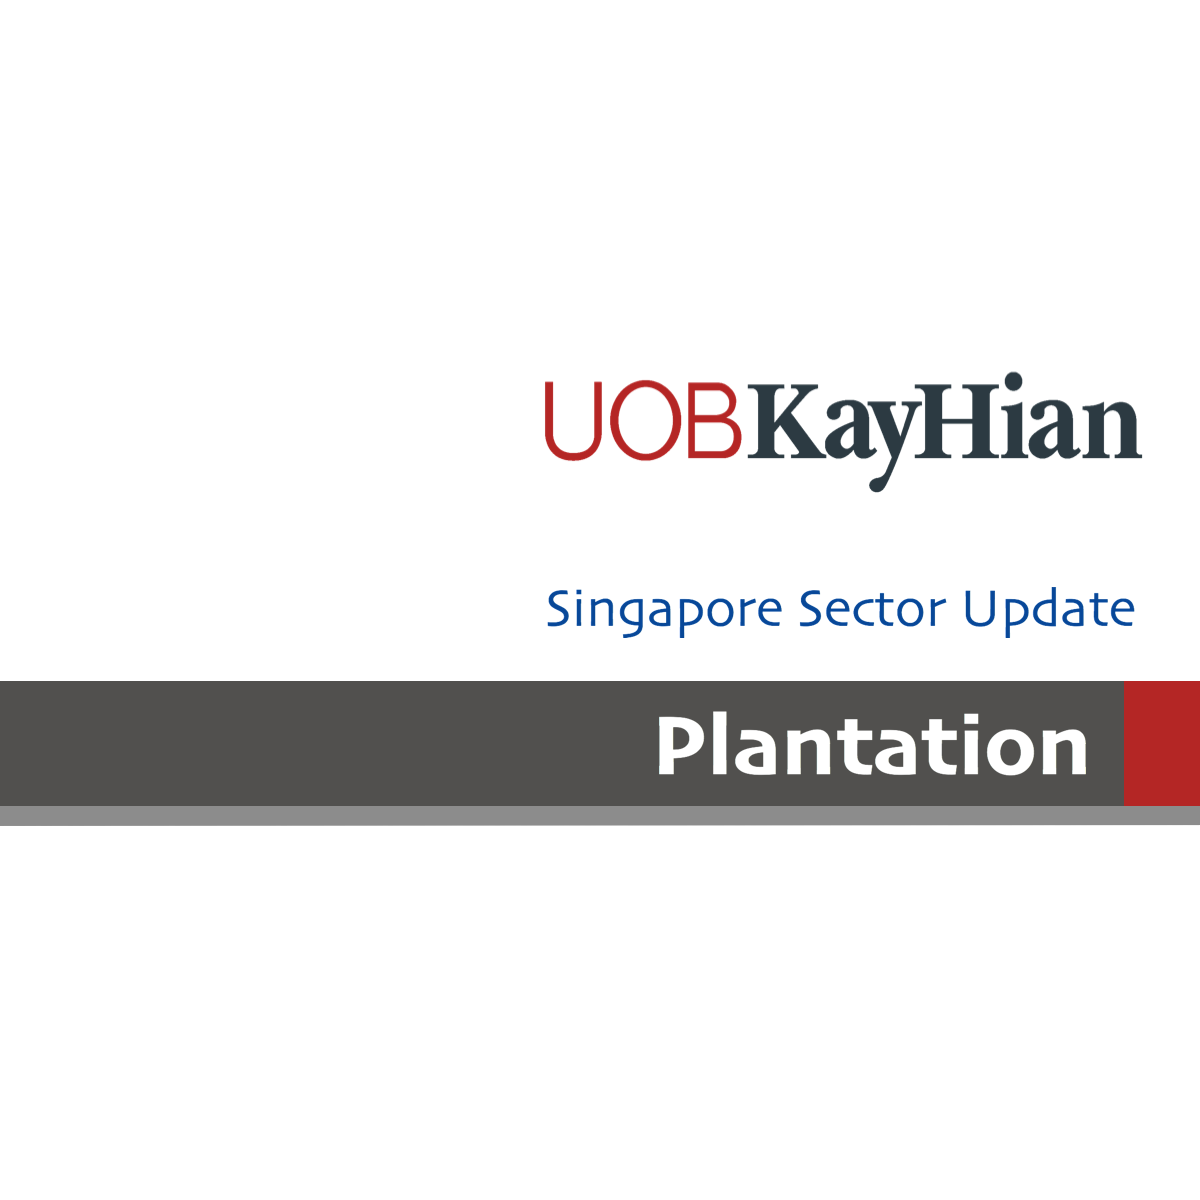 Plantation – Singapore - UOB Kay Hian 2017-08-21: 2Q17 Results: Weaker Earnings Qoq On Lower Production